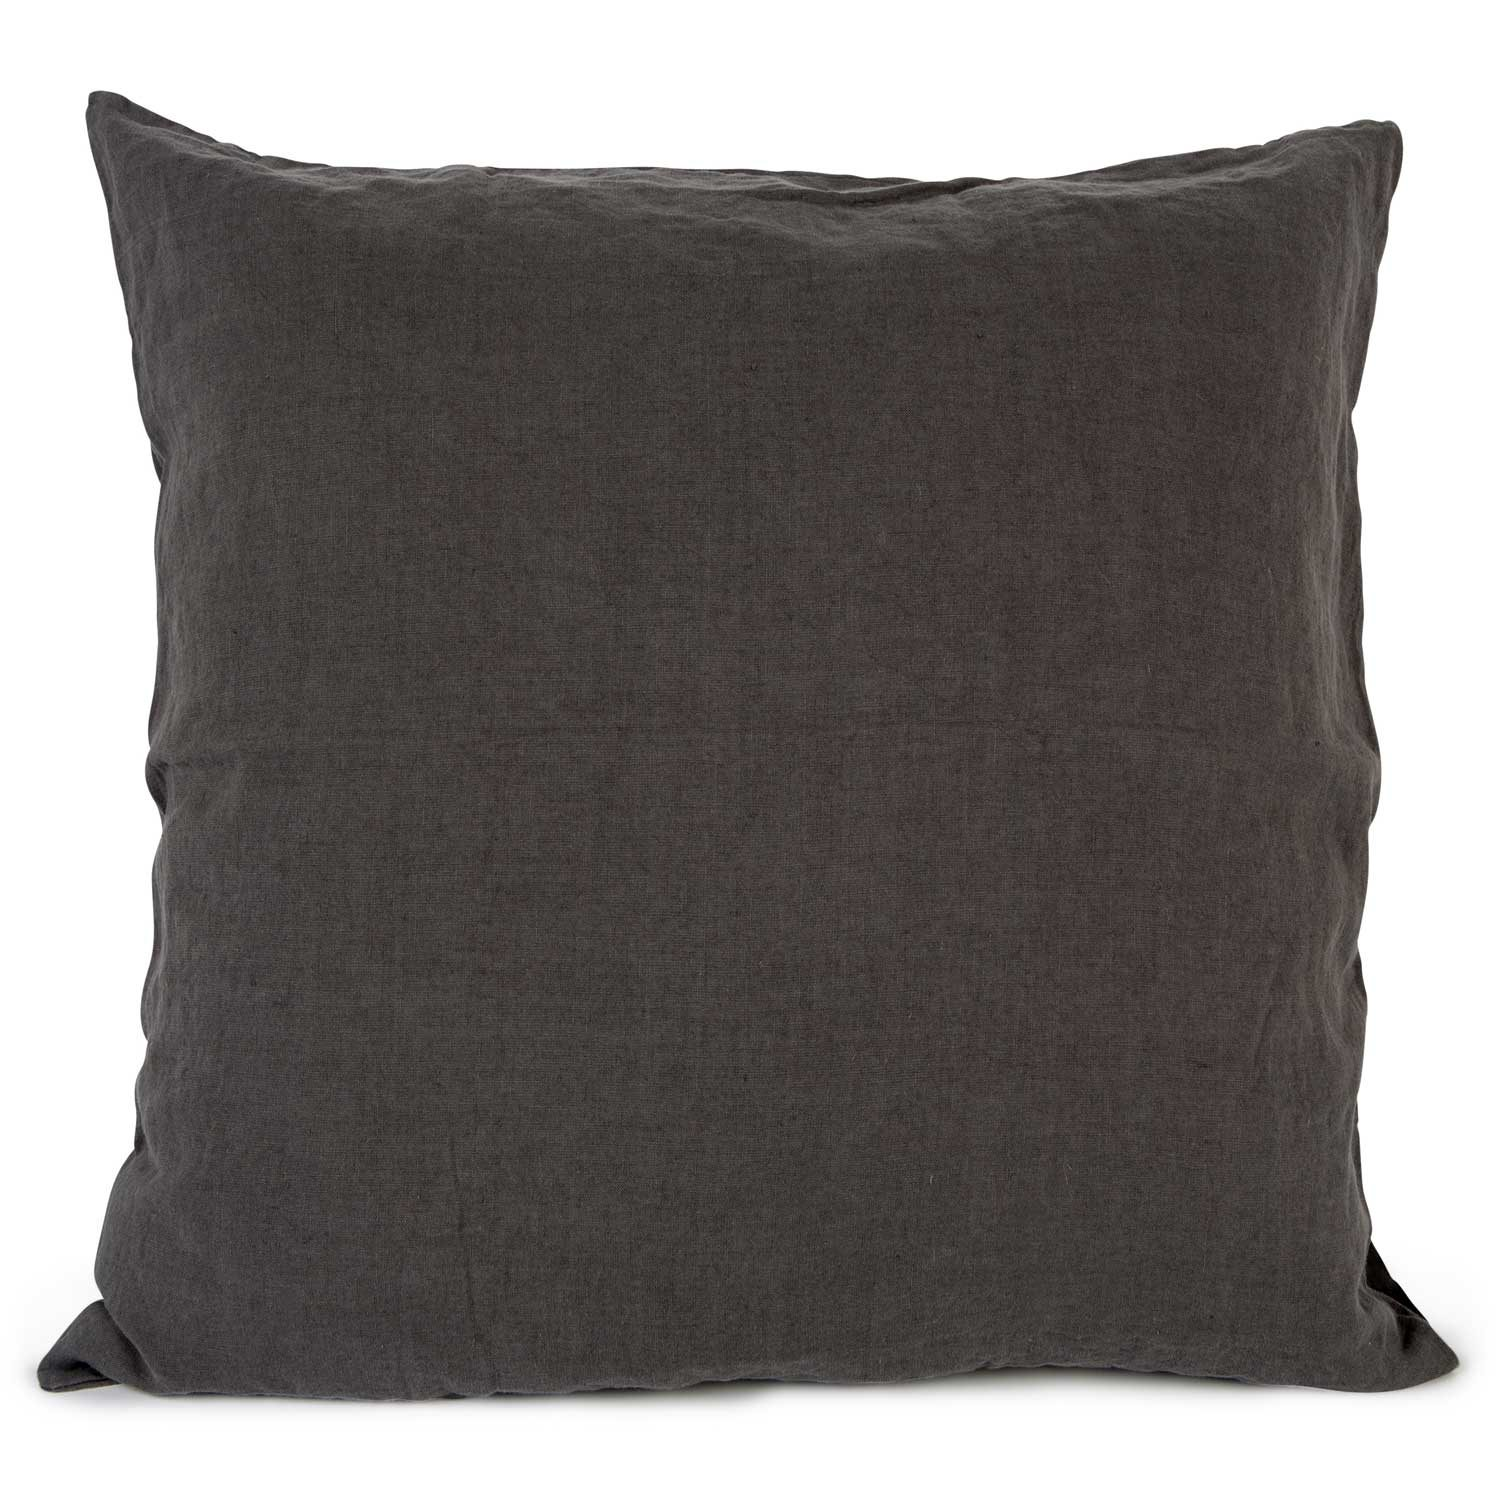 Washed Linen kuddfodral 65x65, dark grey